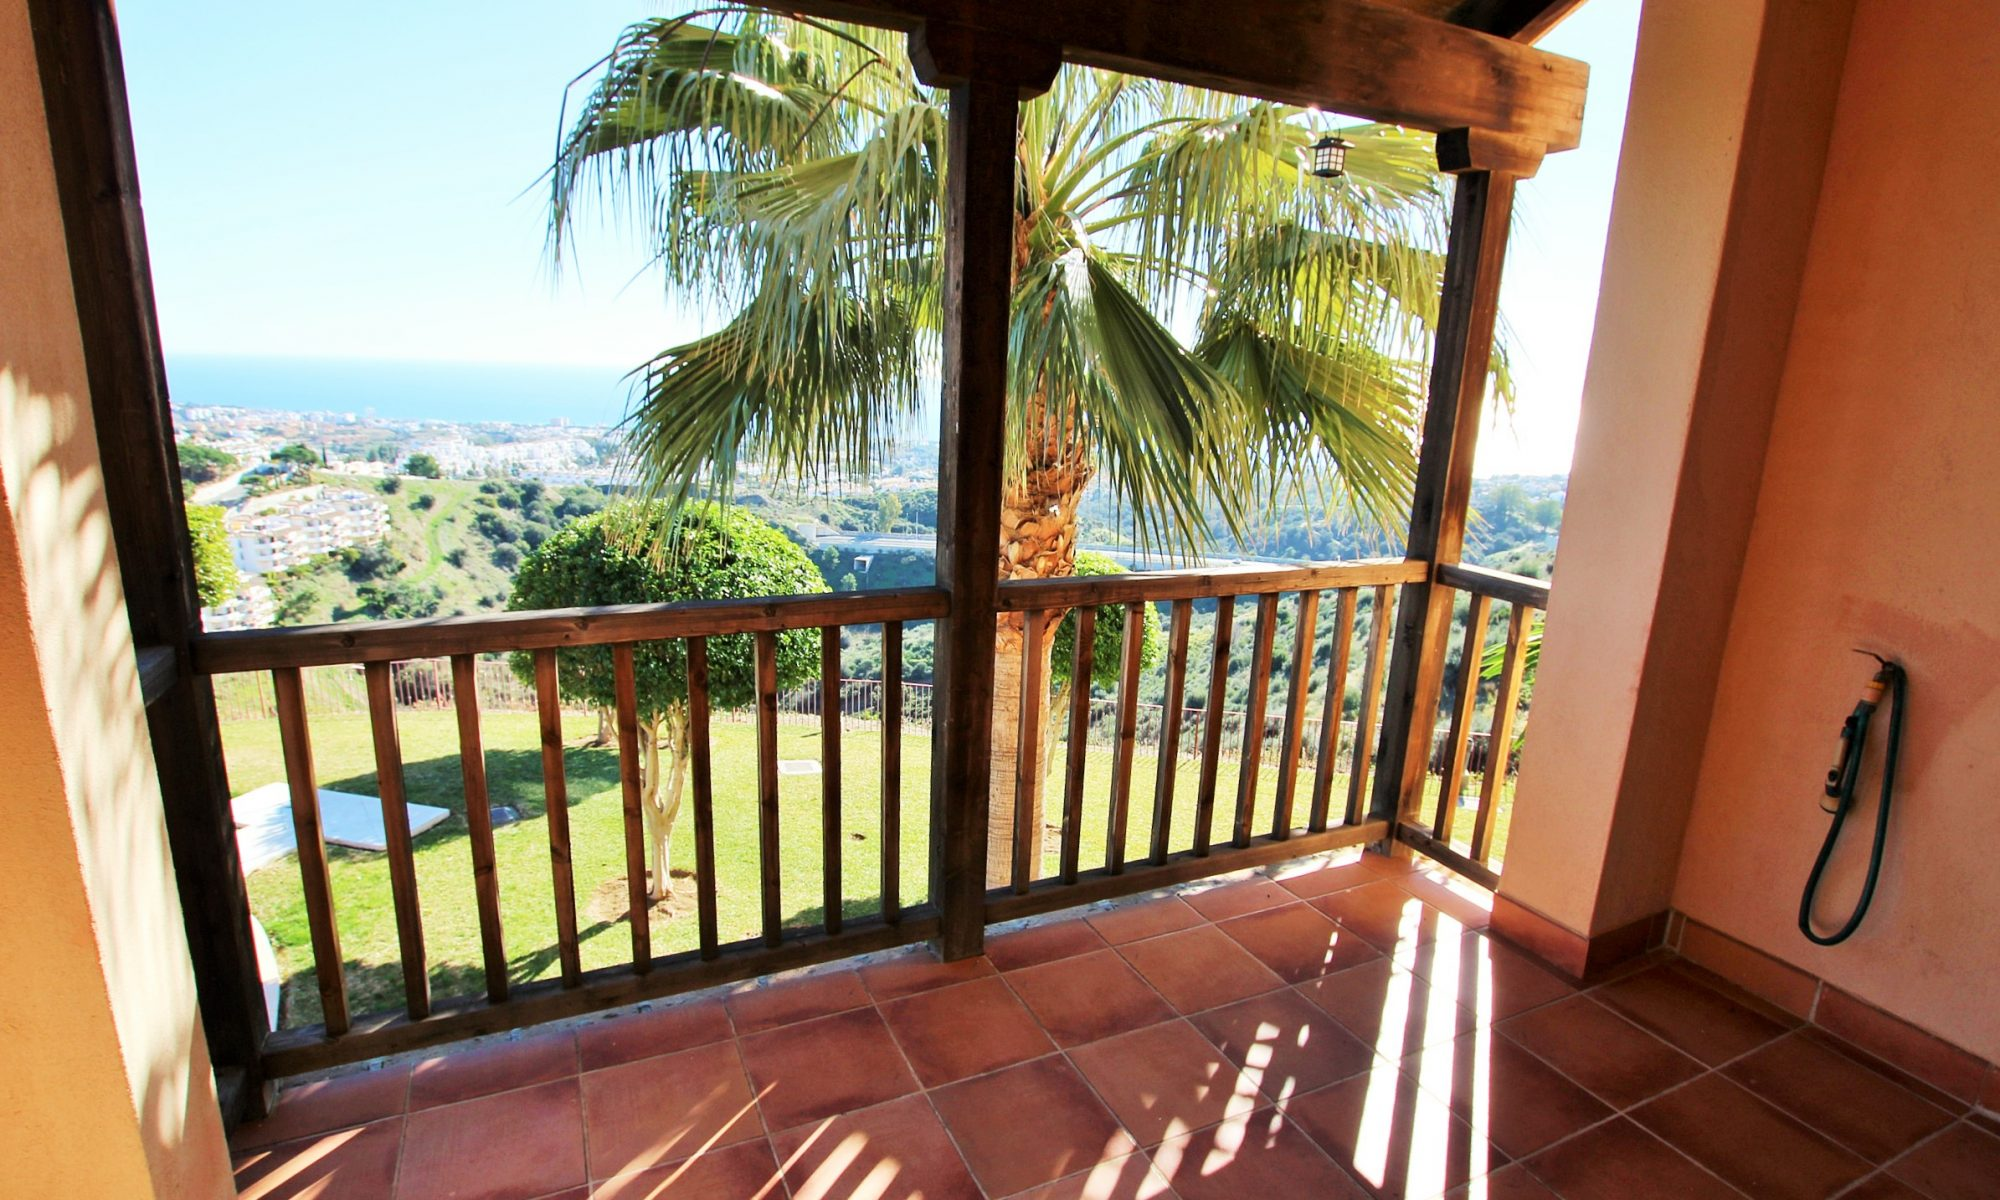 Property for sale in Calahonda